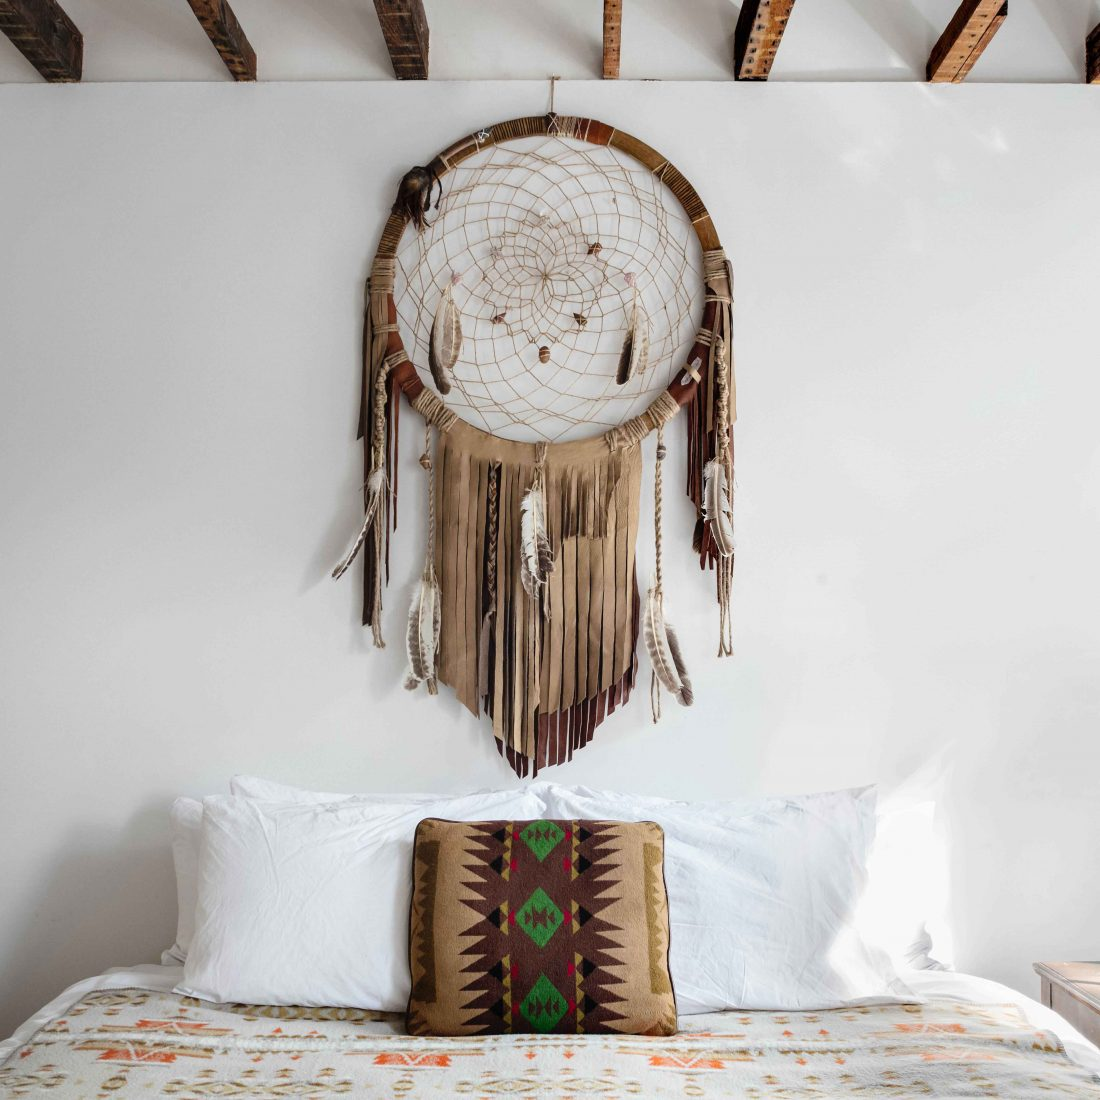 King sized bed inside the Dream Catcher room of Urban Cowboy Brooklyn. A large fringed dreamcatcher hangs above the bed.